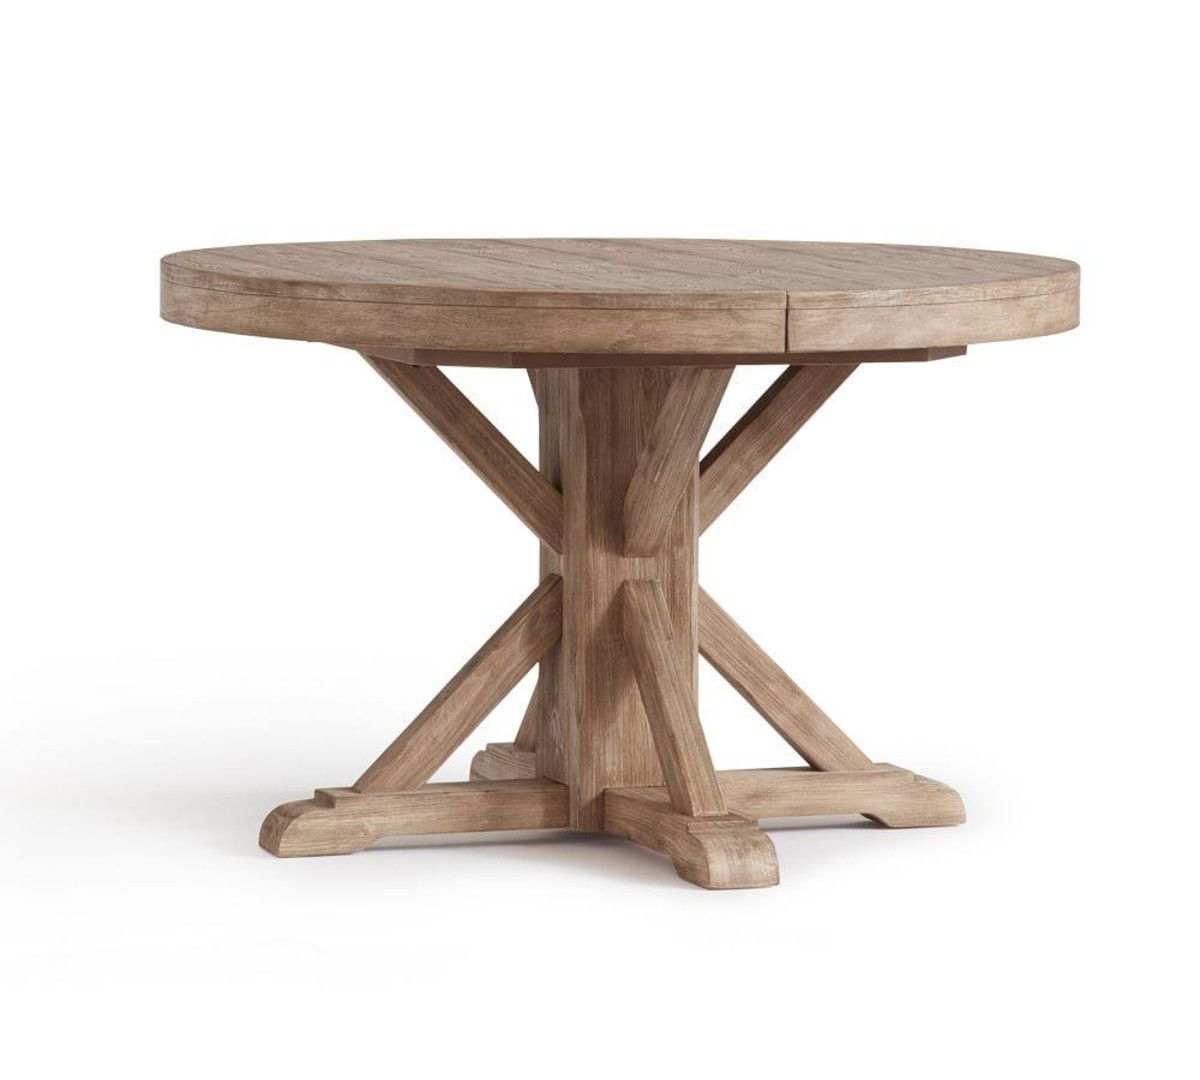 Benchwright Extending Round Table – Seadrift | New House In Most Up To Date Seadrift Benchwright Extending Dining Tables (View 5 of 25)